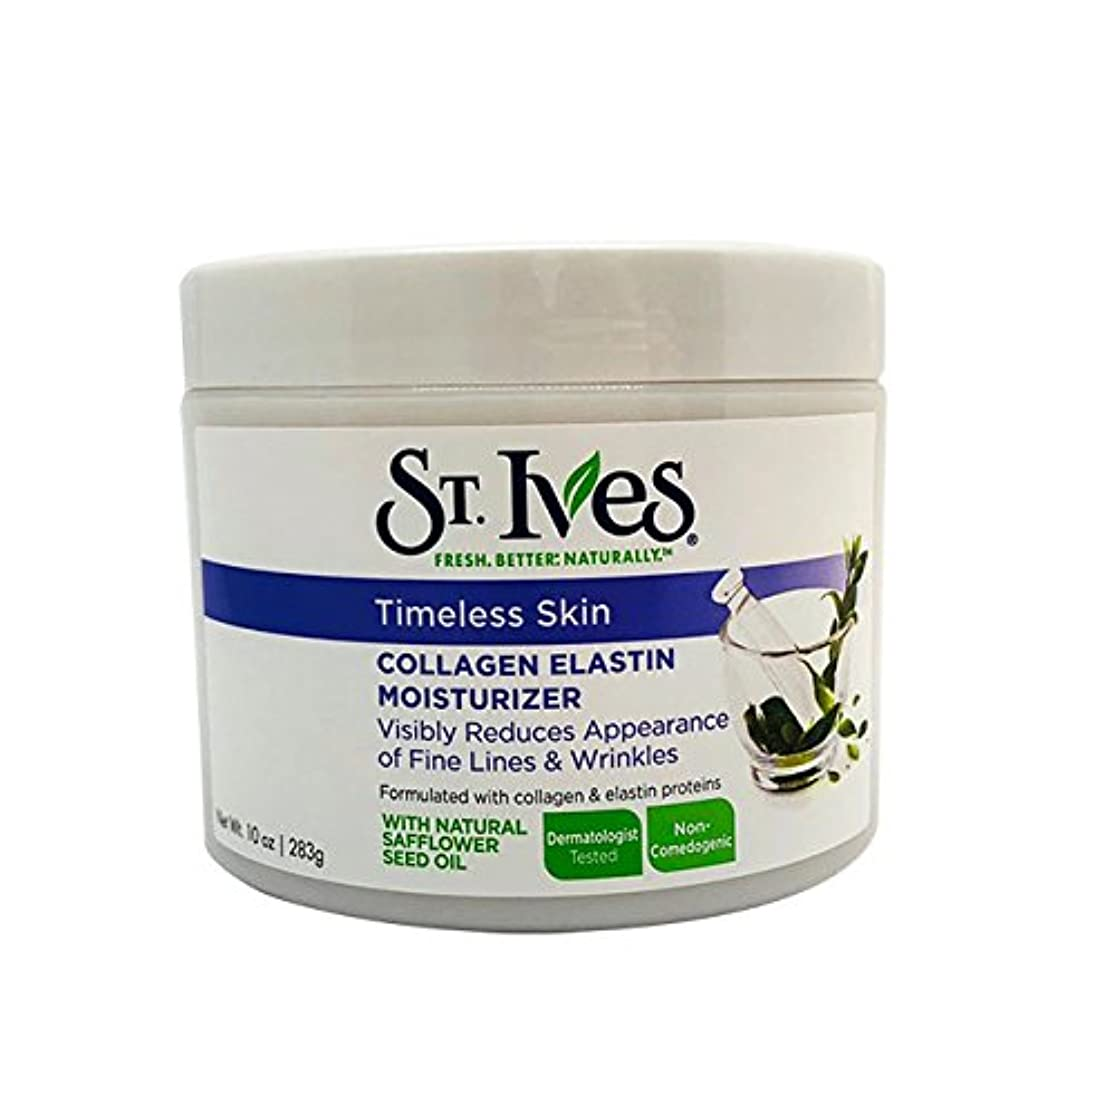 膜閉じ込める冷ややかなSt. Ives Facial Moisturizer, Timeless Skin Collagen Elastin, 10oz by St. Ives [並行輸入品]